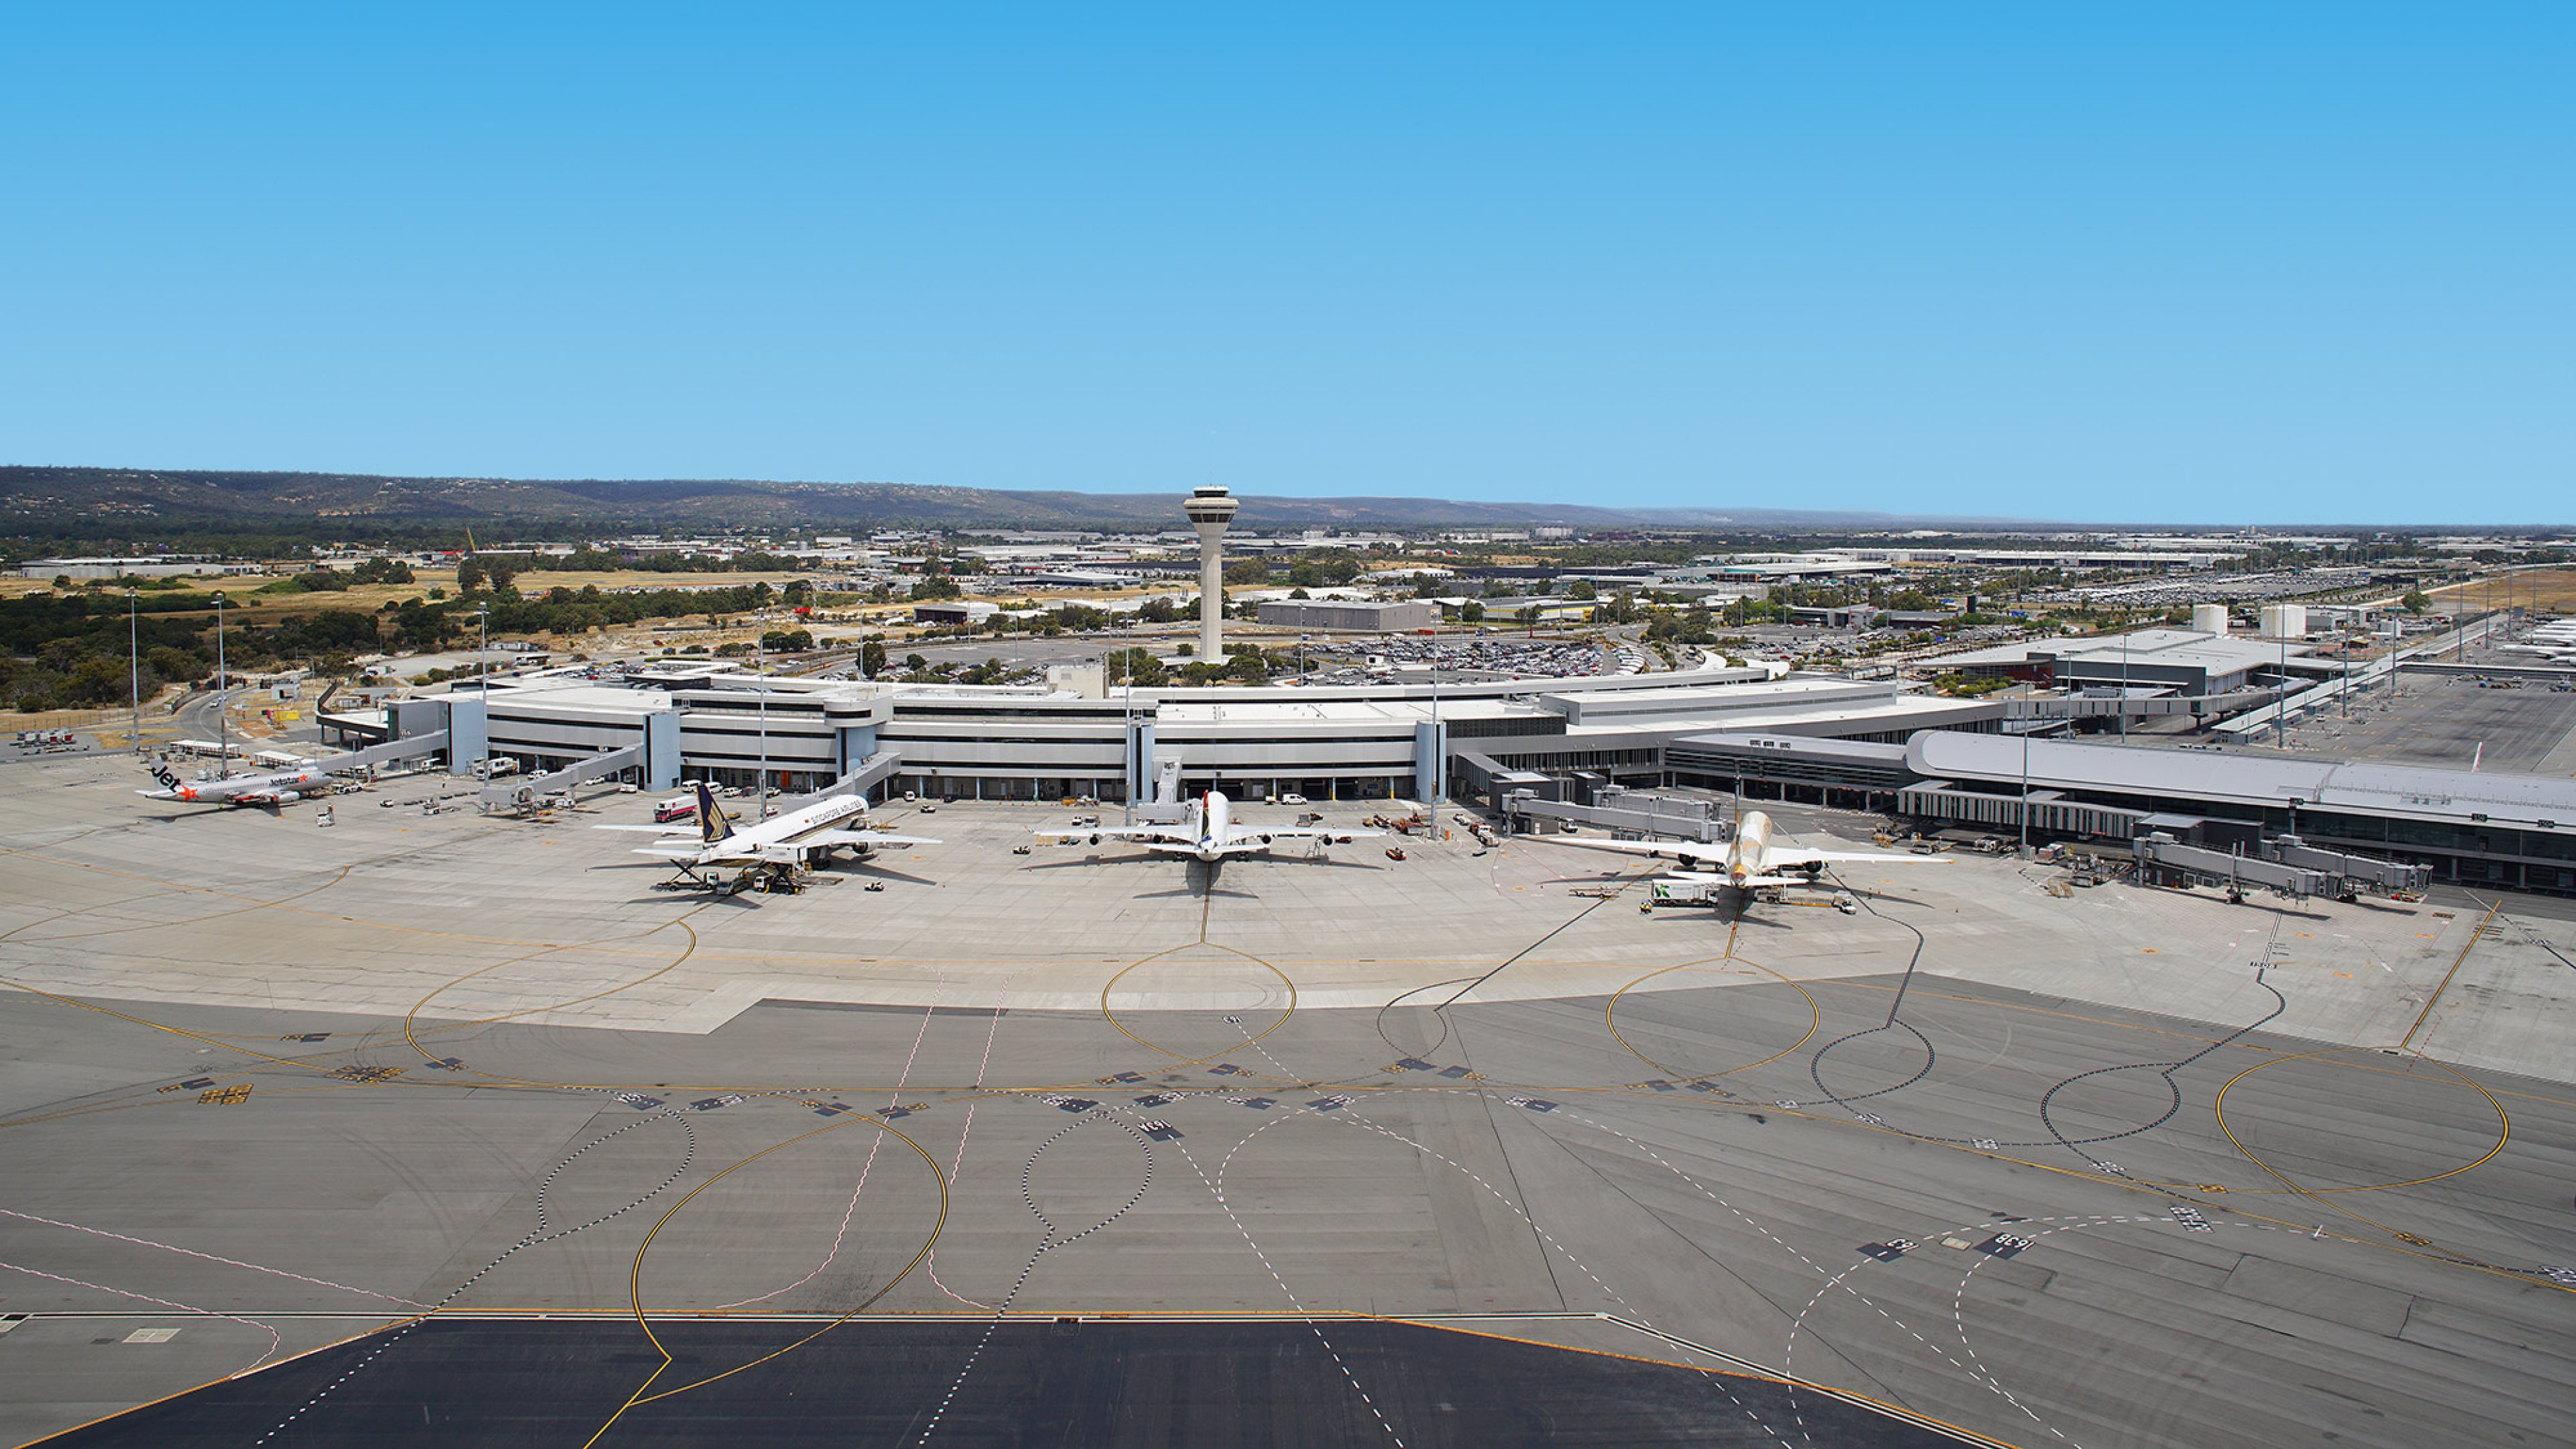 Terminal view, image courtesy of Perth Airport